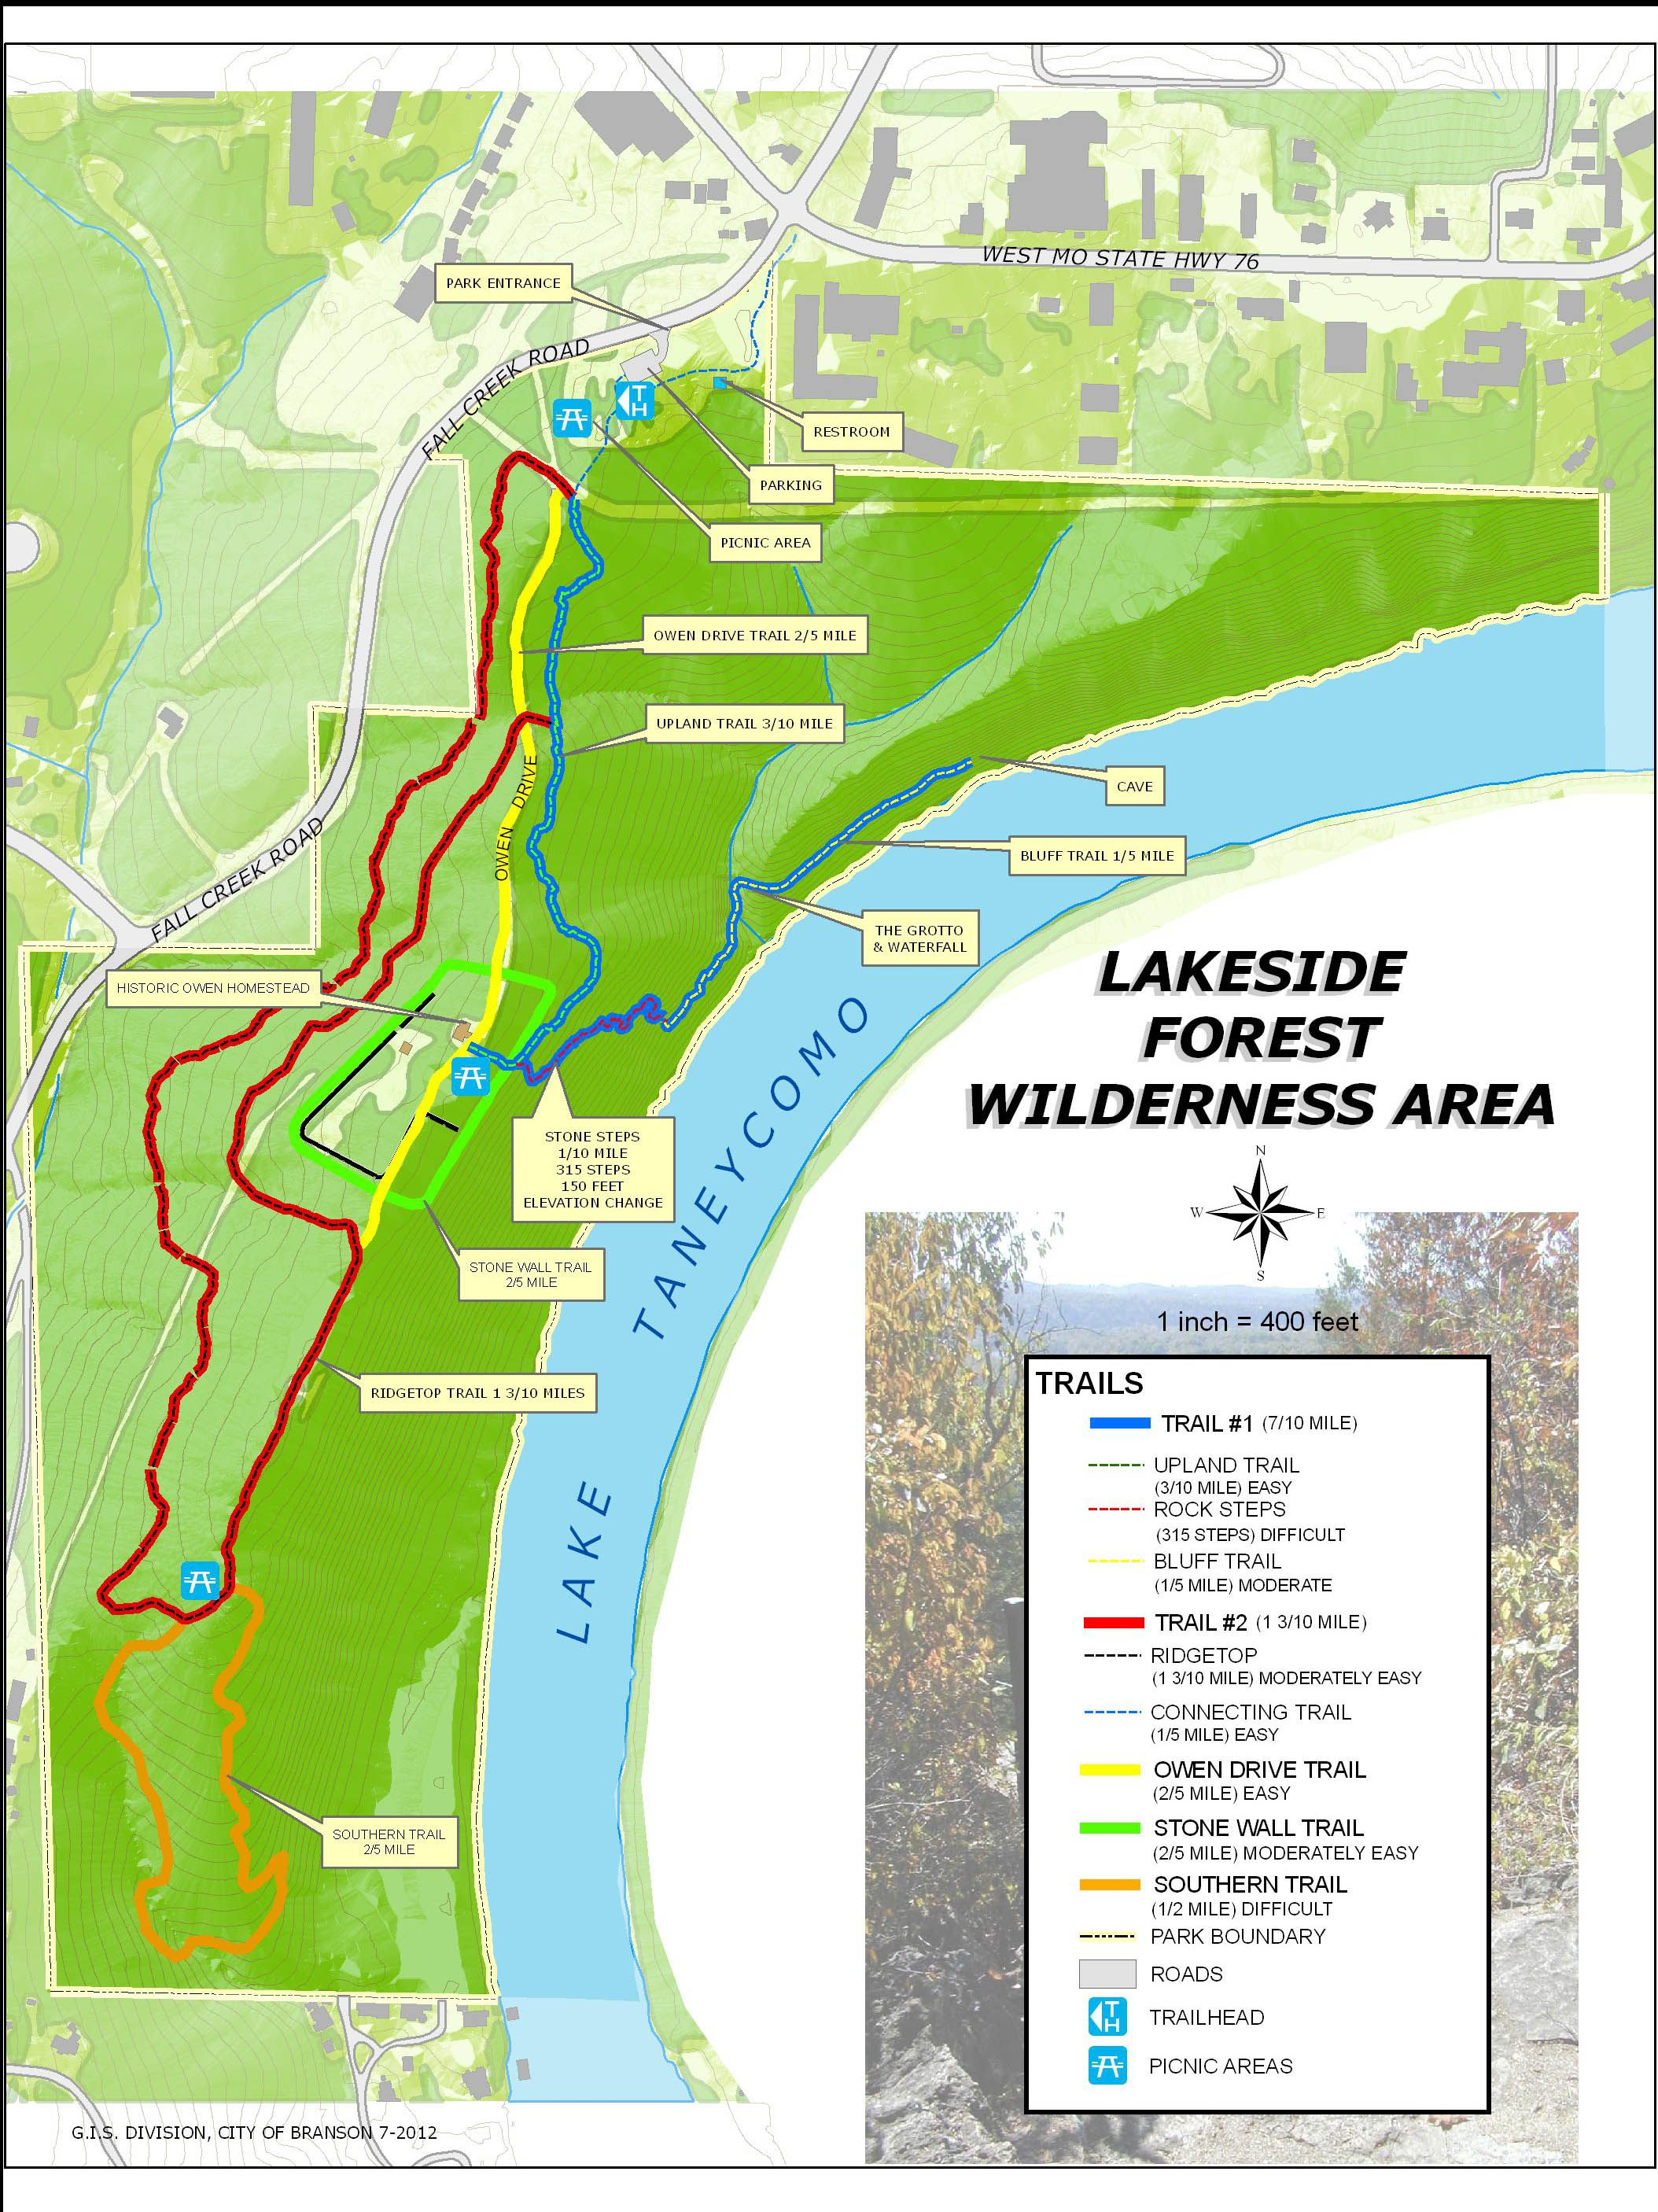 Lakeside Forest Trail Map Branson Mo Branson Vacation Forest Map Forest Trail